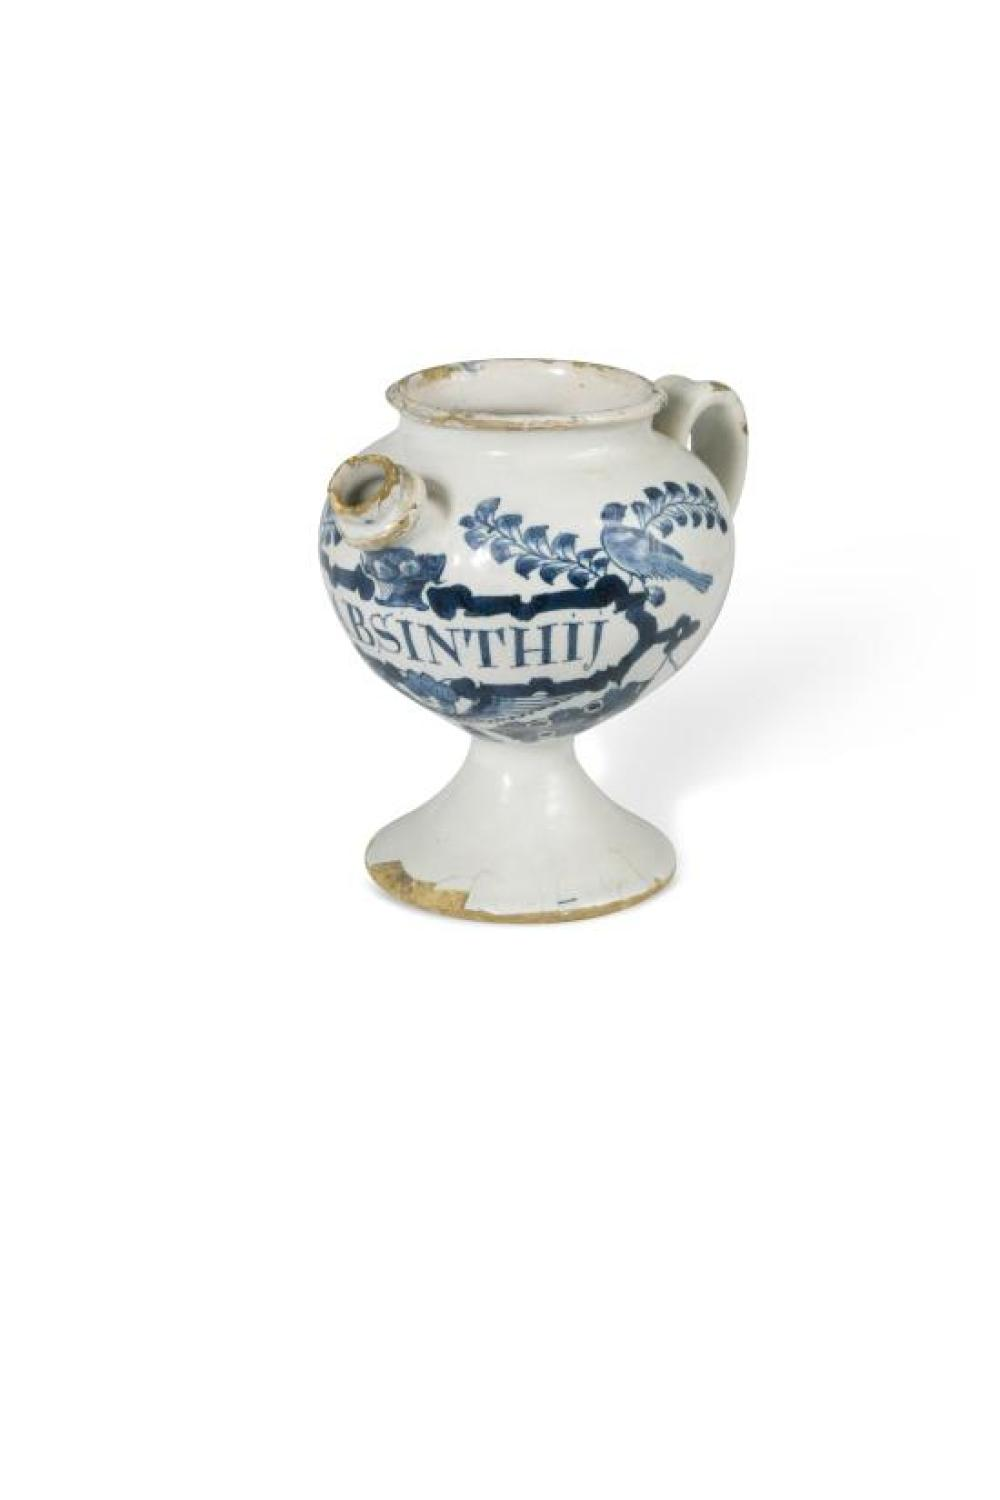 An early 18th century English Delft blue and white wet drug jar, probably Lambeth,